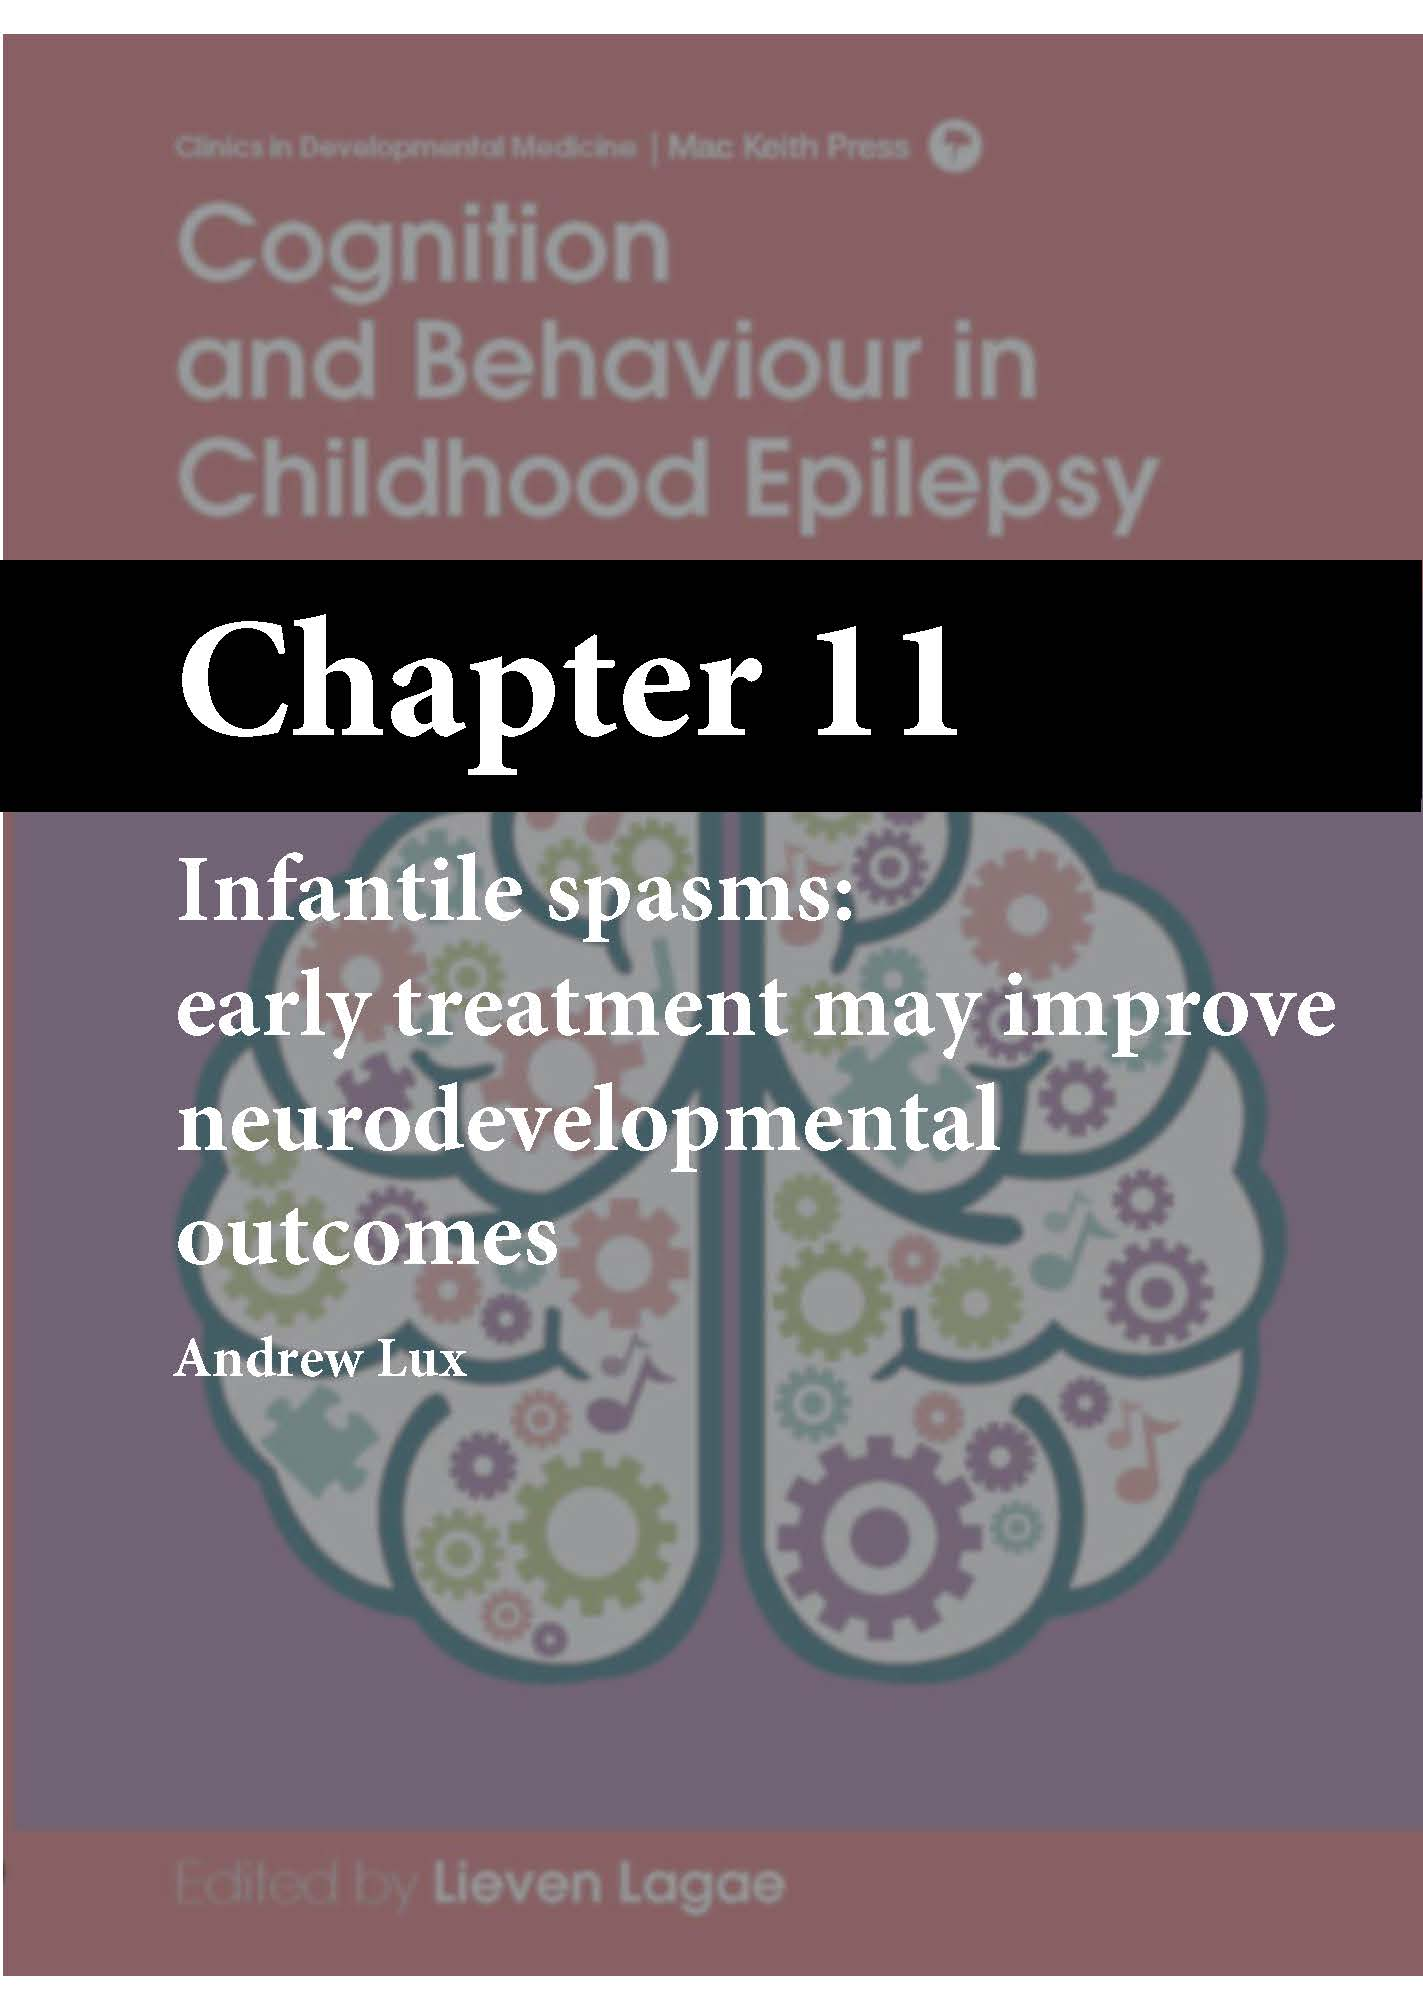 Cognition and Behaviour in Childhood Epilepsy, Lagae, Chapter 11 cover